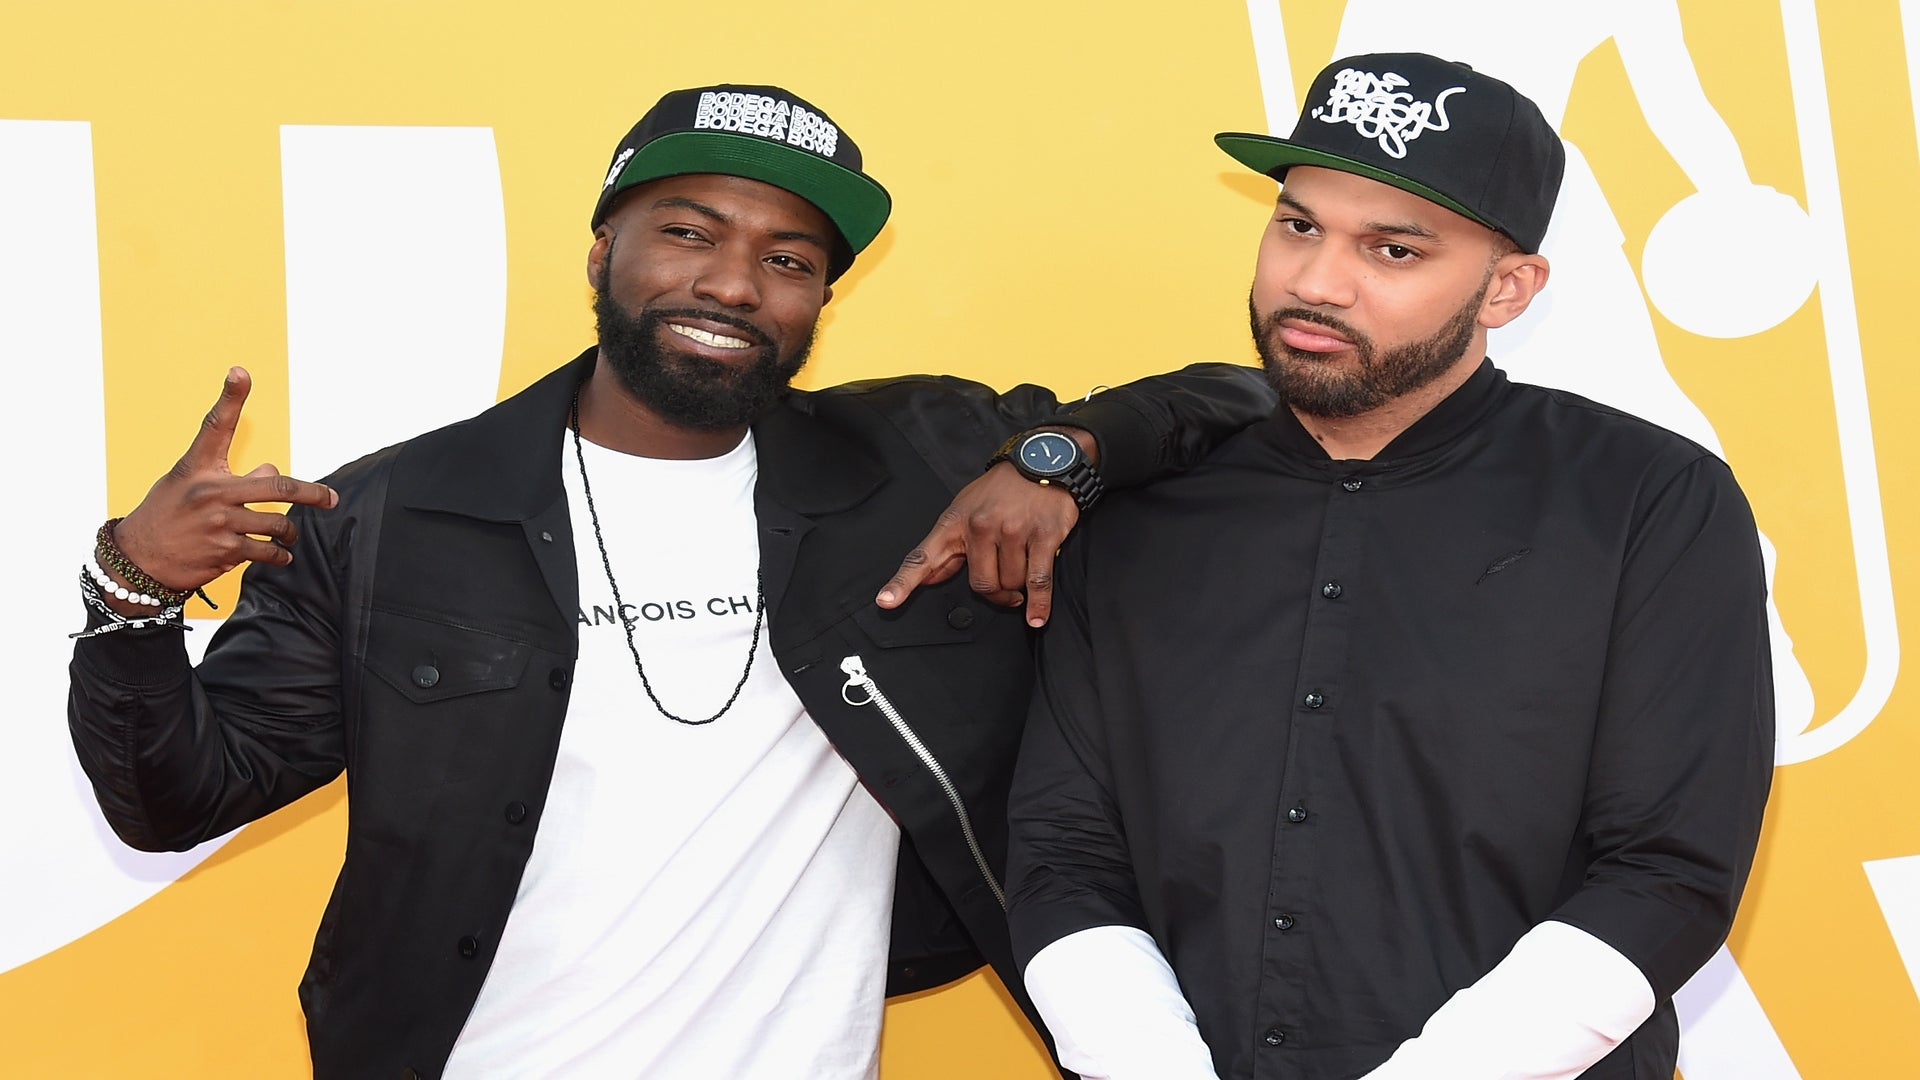 It's Lit! Desus & Mero's Late Night Show Finally Gets A Premiere Date